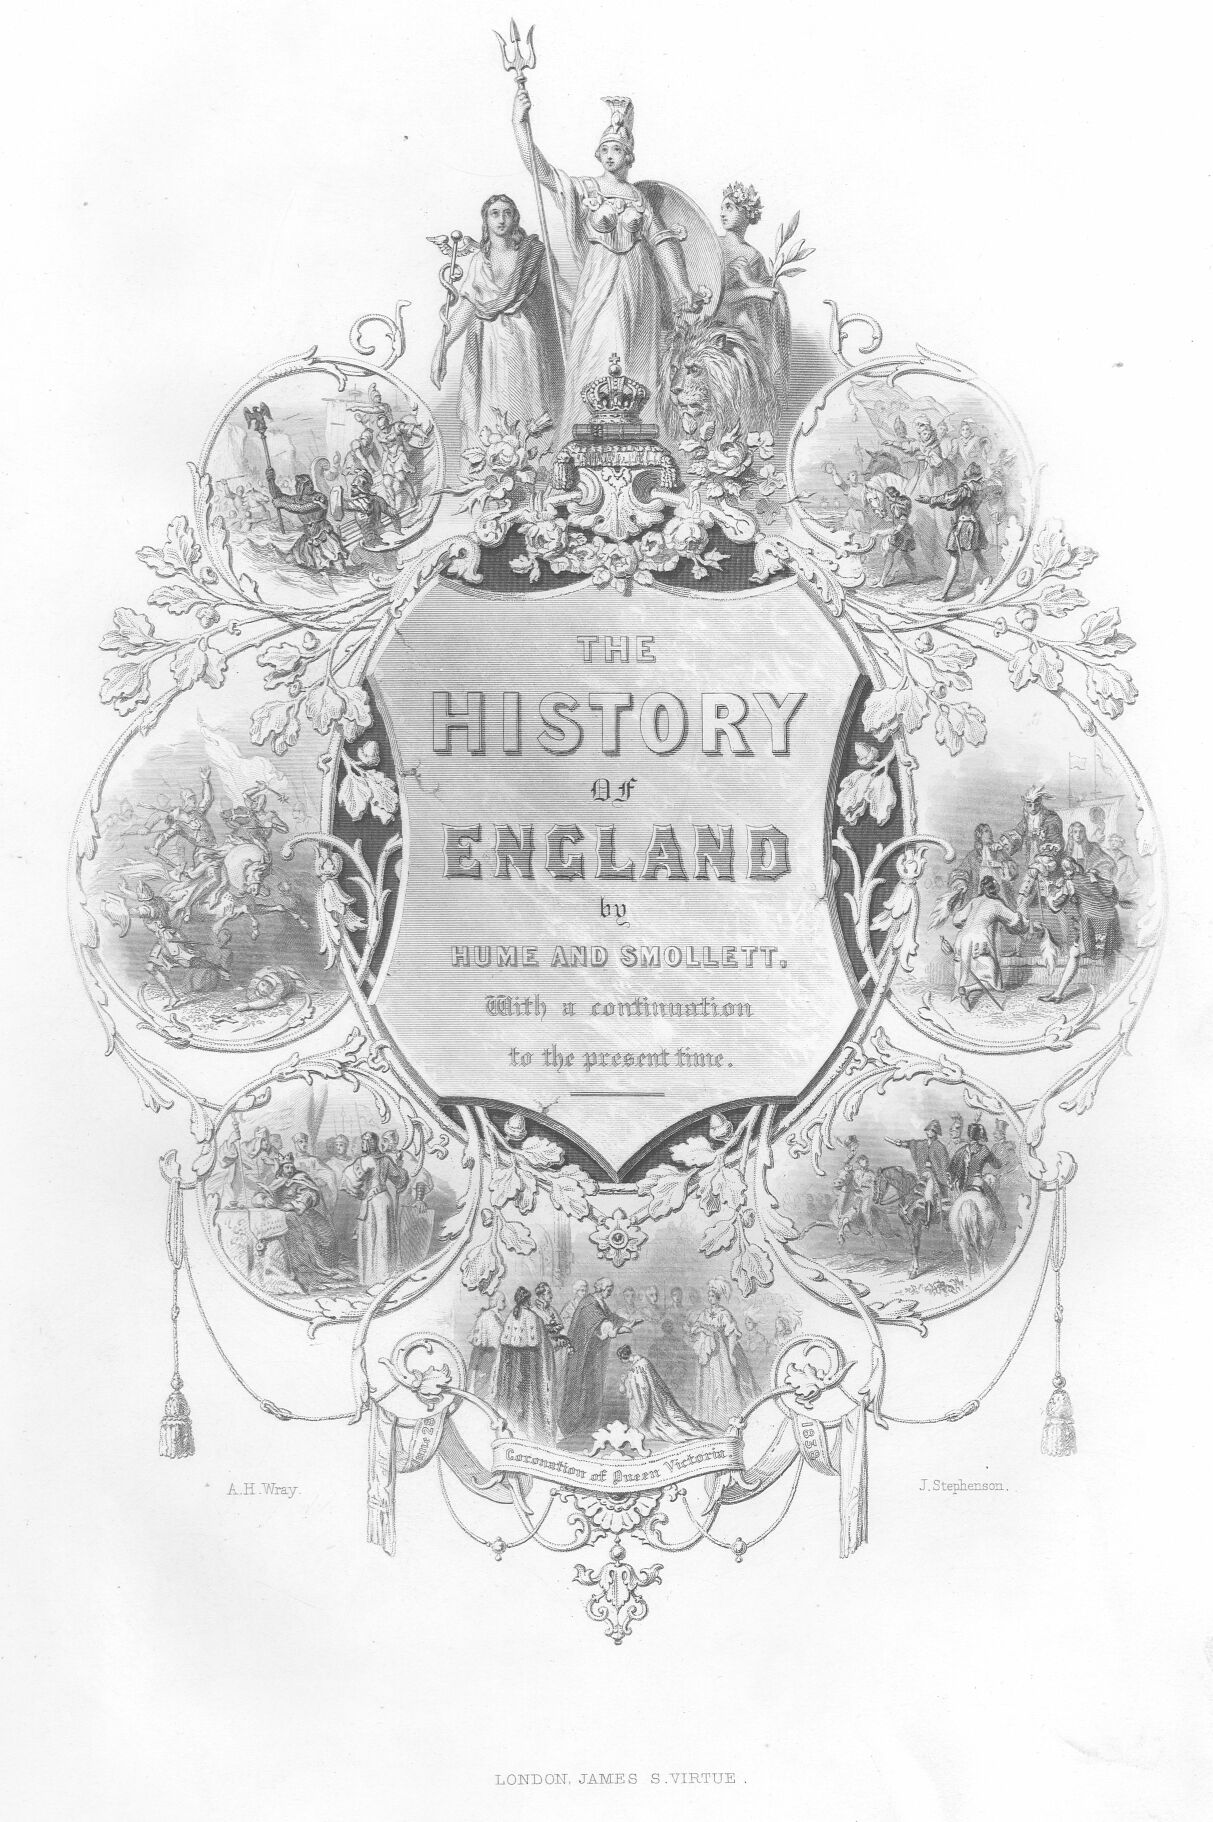 the history of england vol ia by david hume enlarge